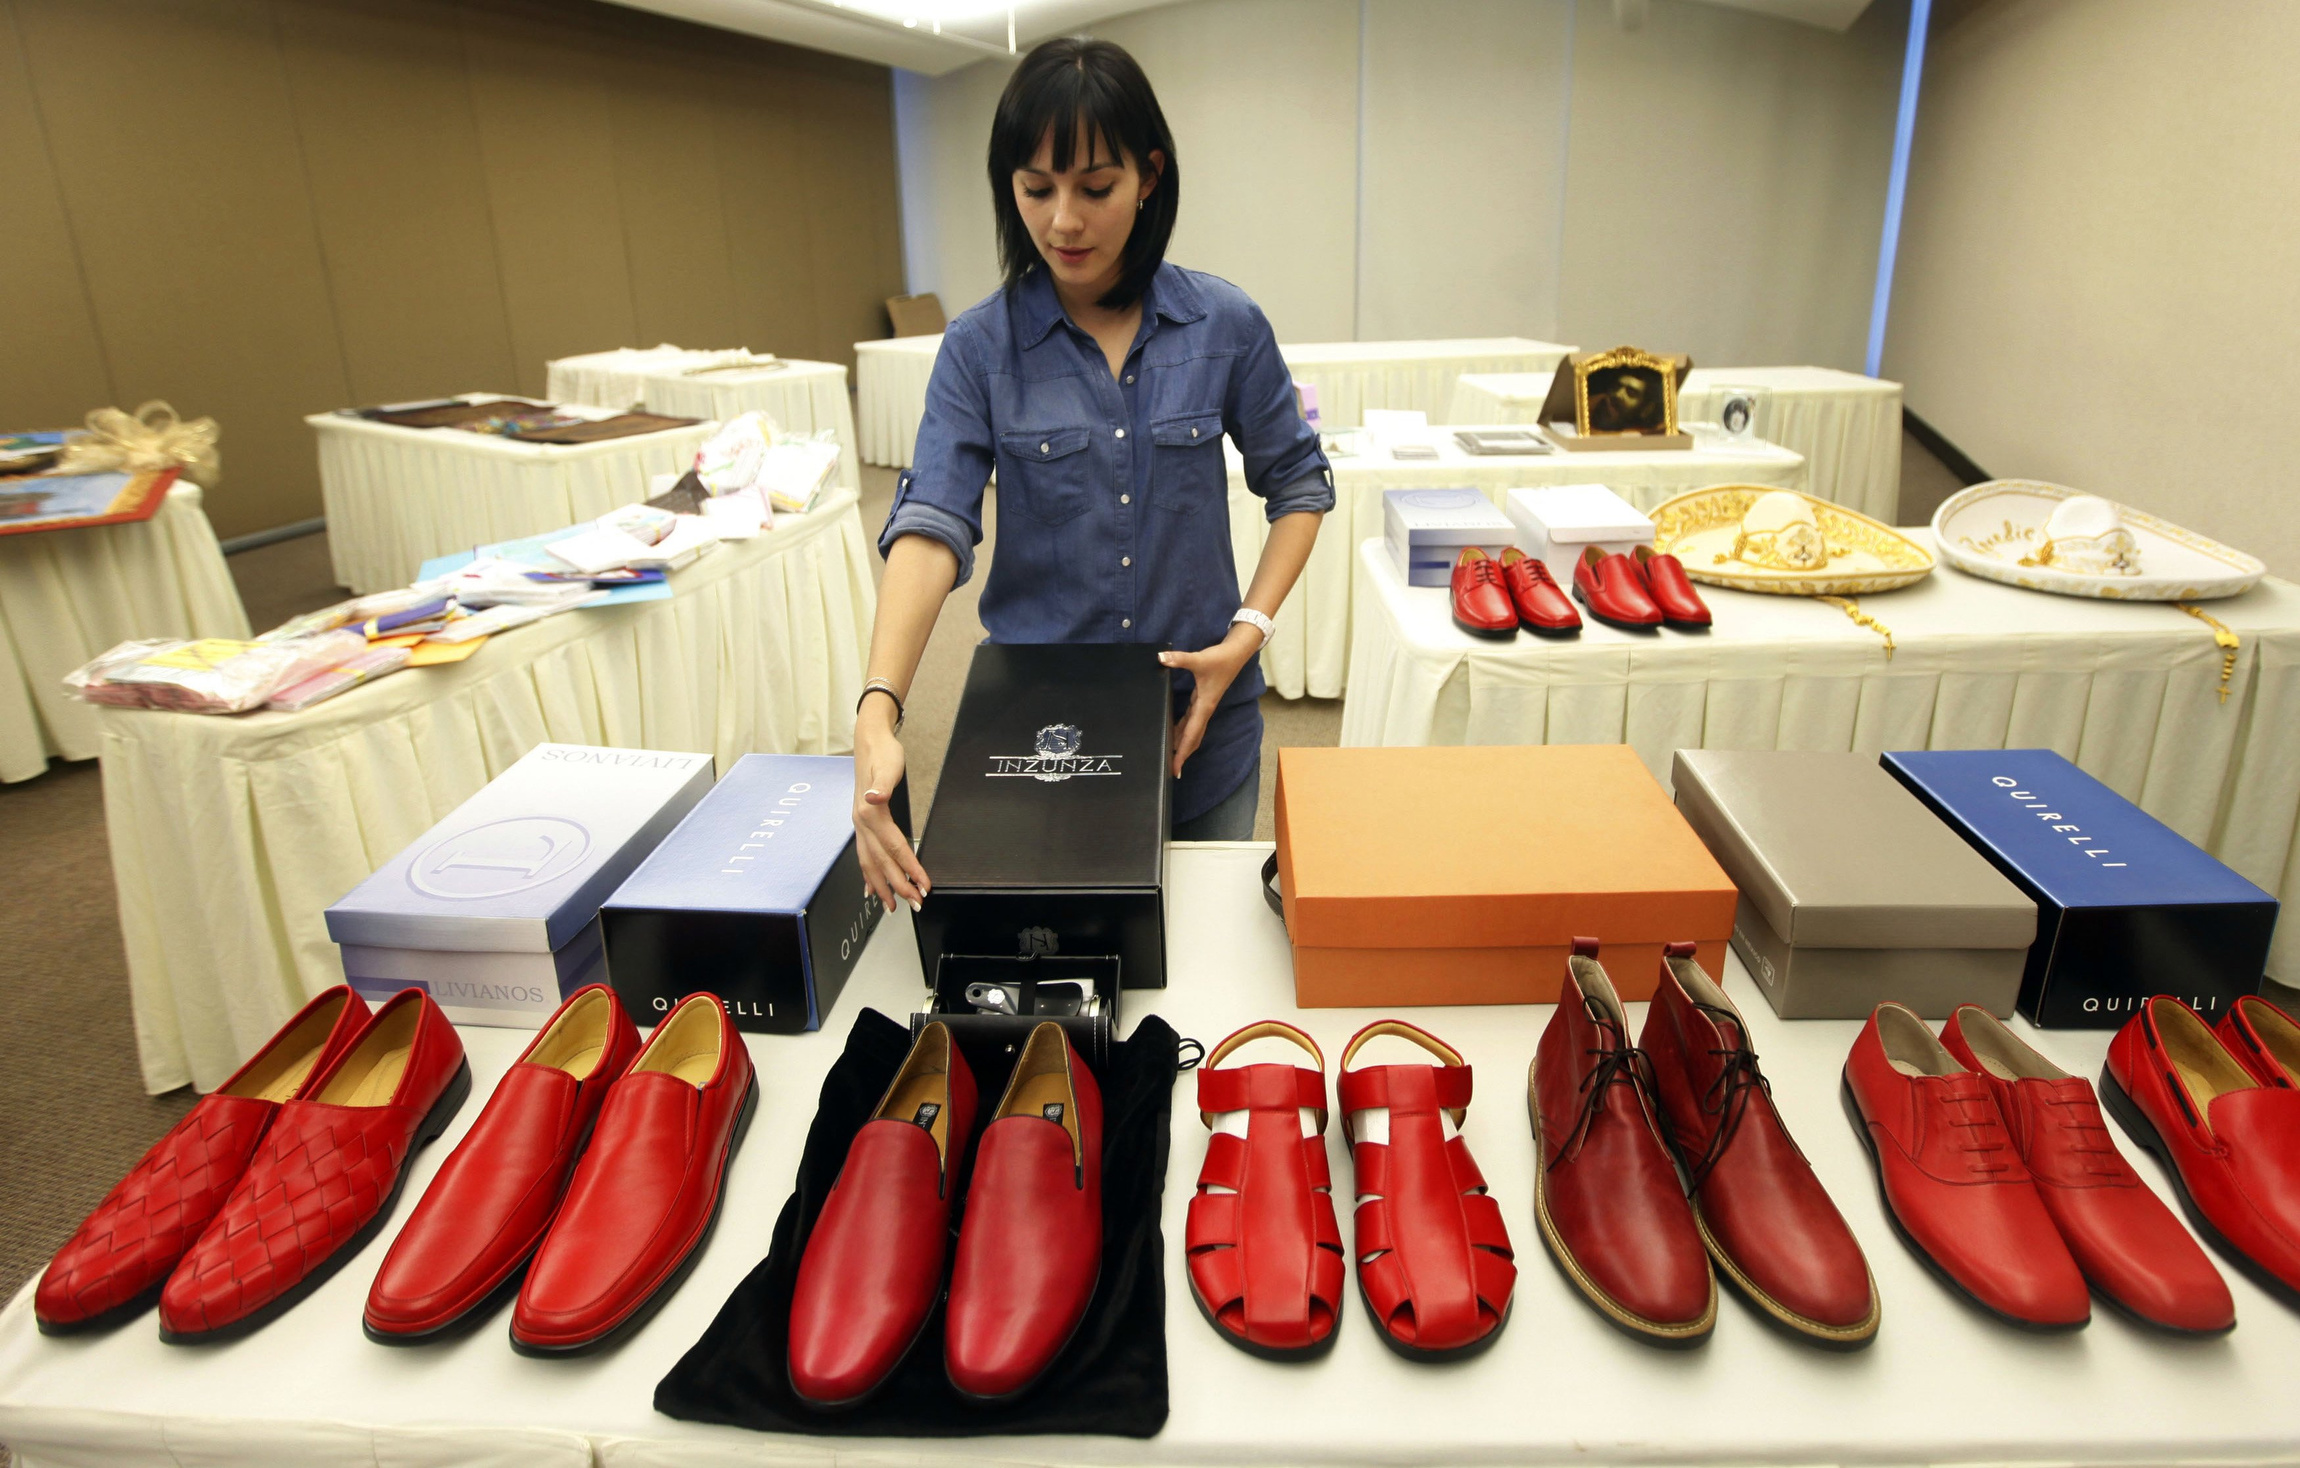 VOLUNTEEER SHOWS RED SHOES TO BE GIVEN TO POPE BENEDICT DURING ...